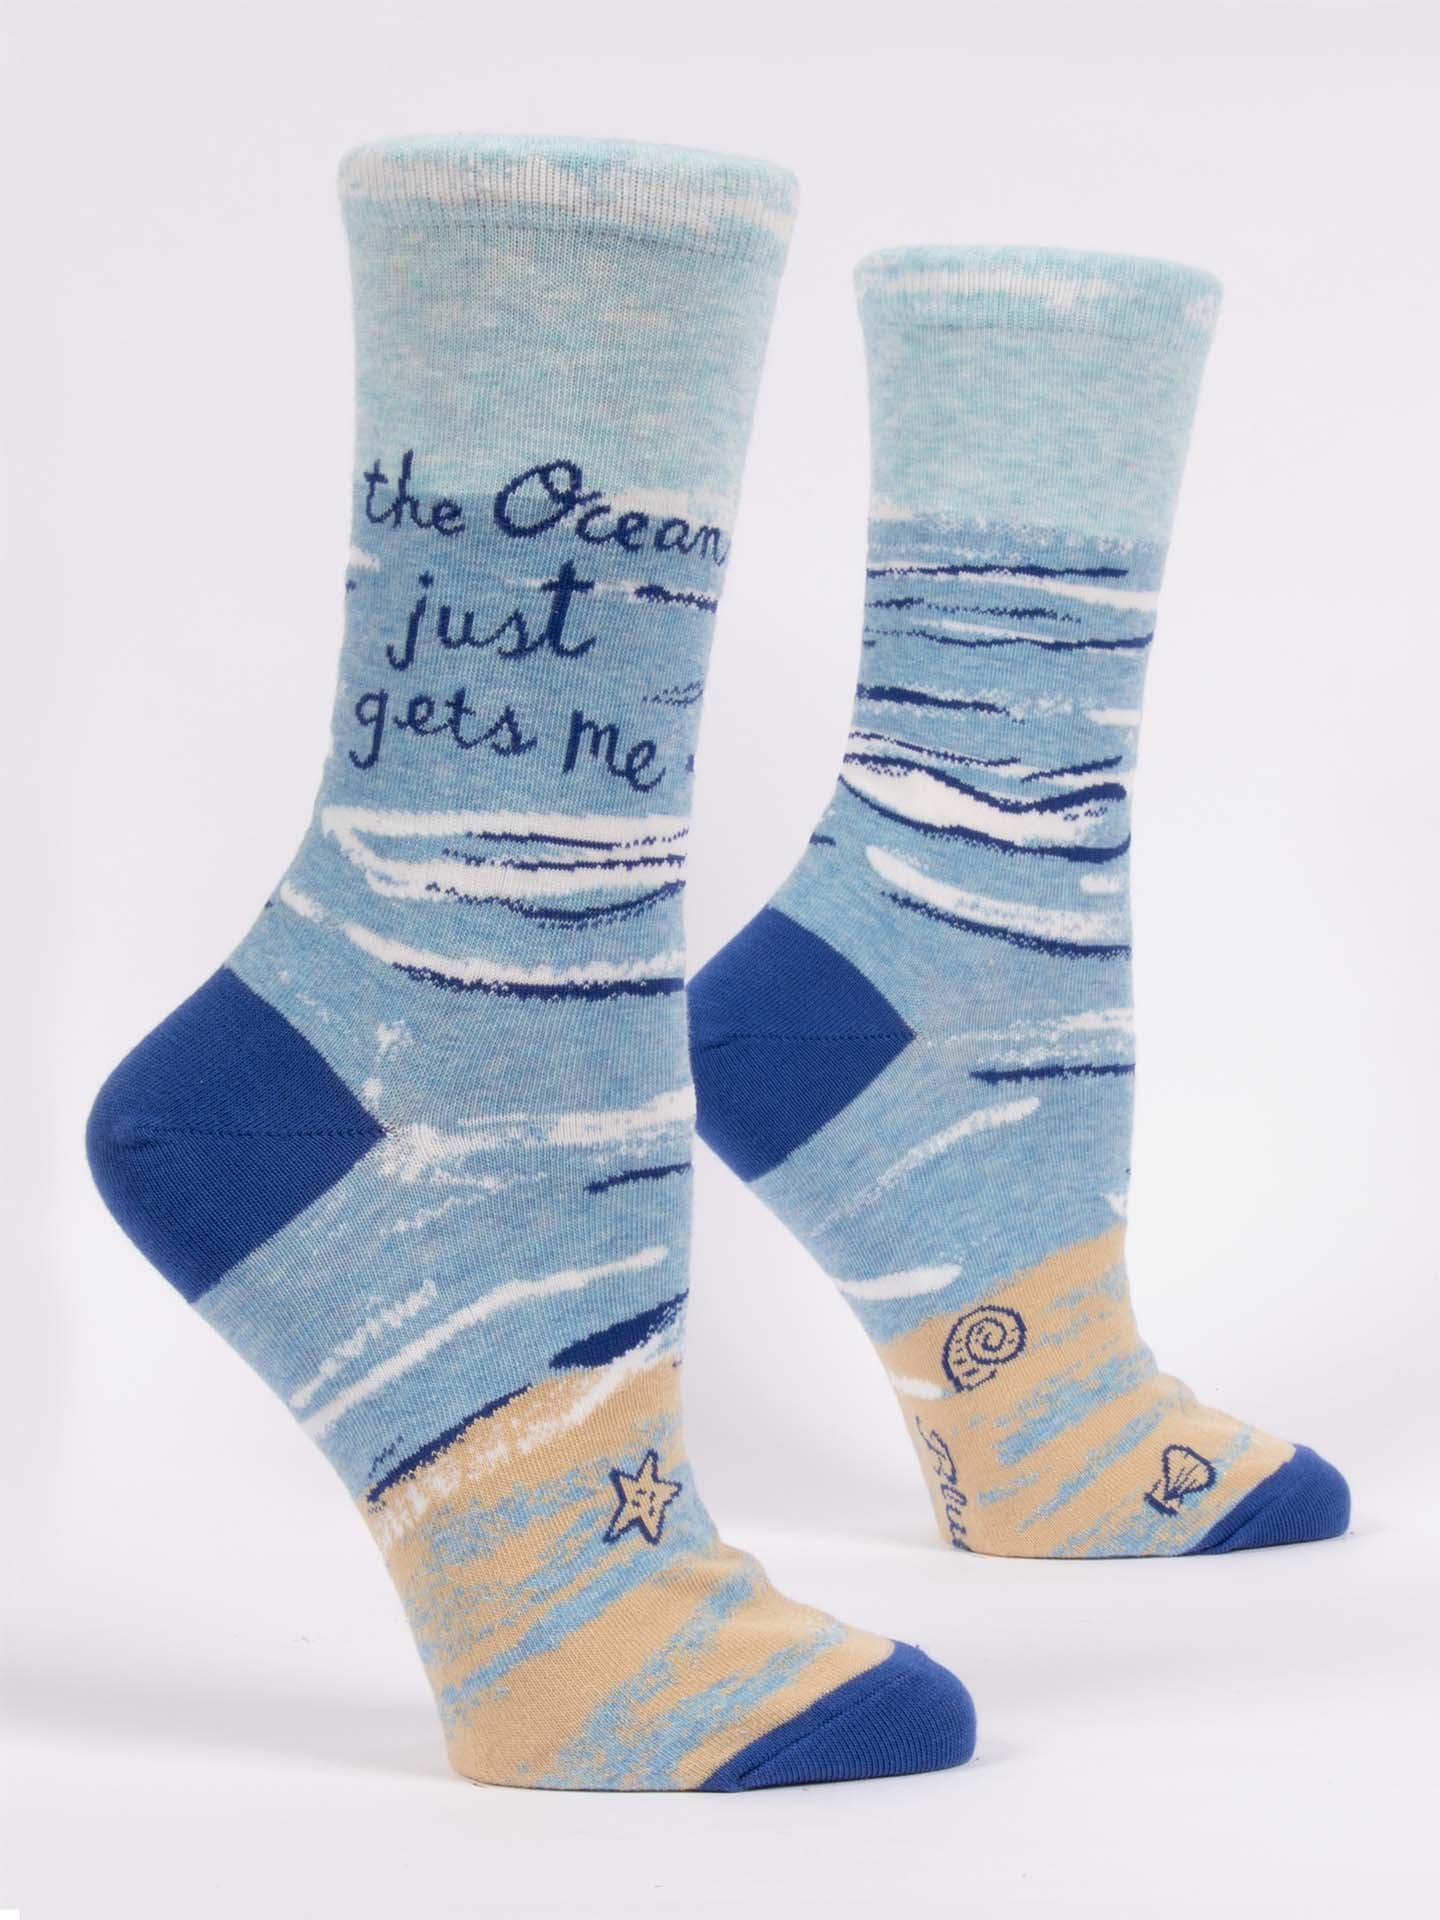 Blue Q Womens Crew Sock The Ocean Just Gets Me